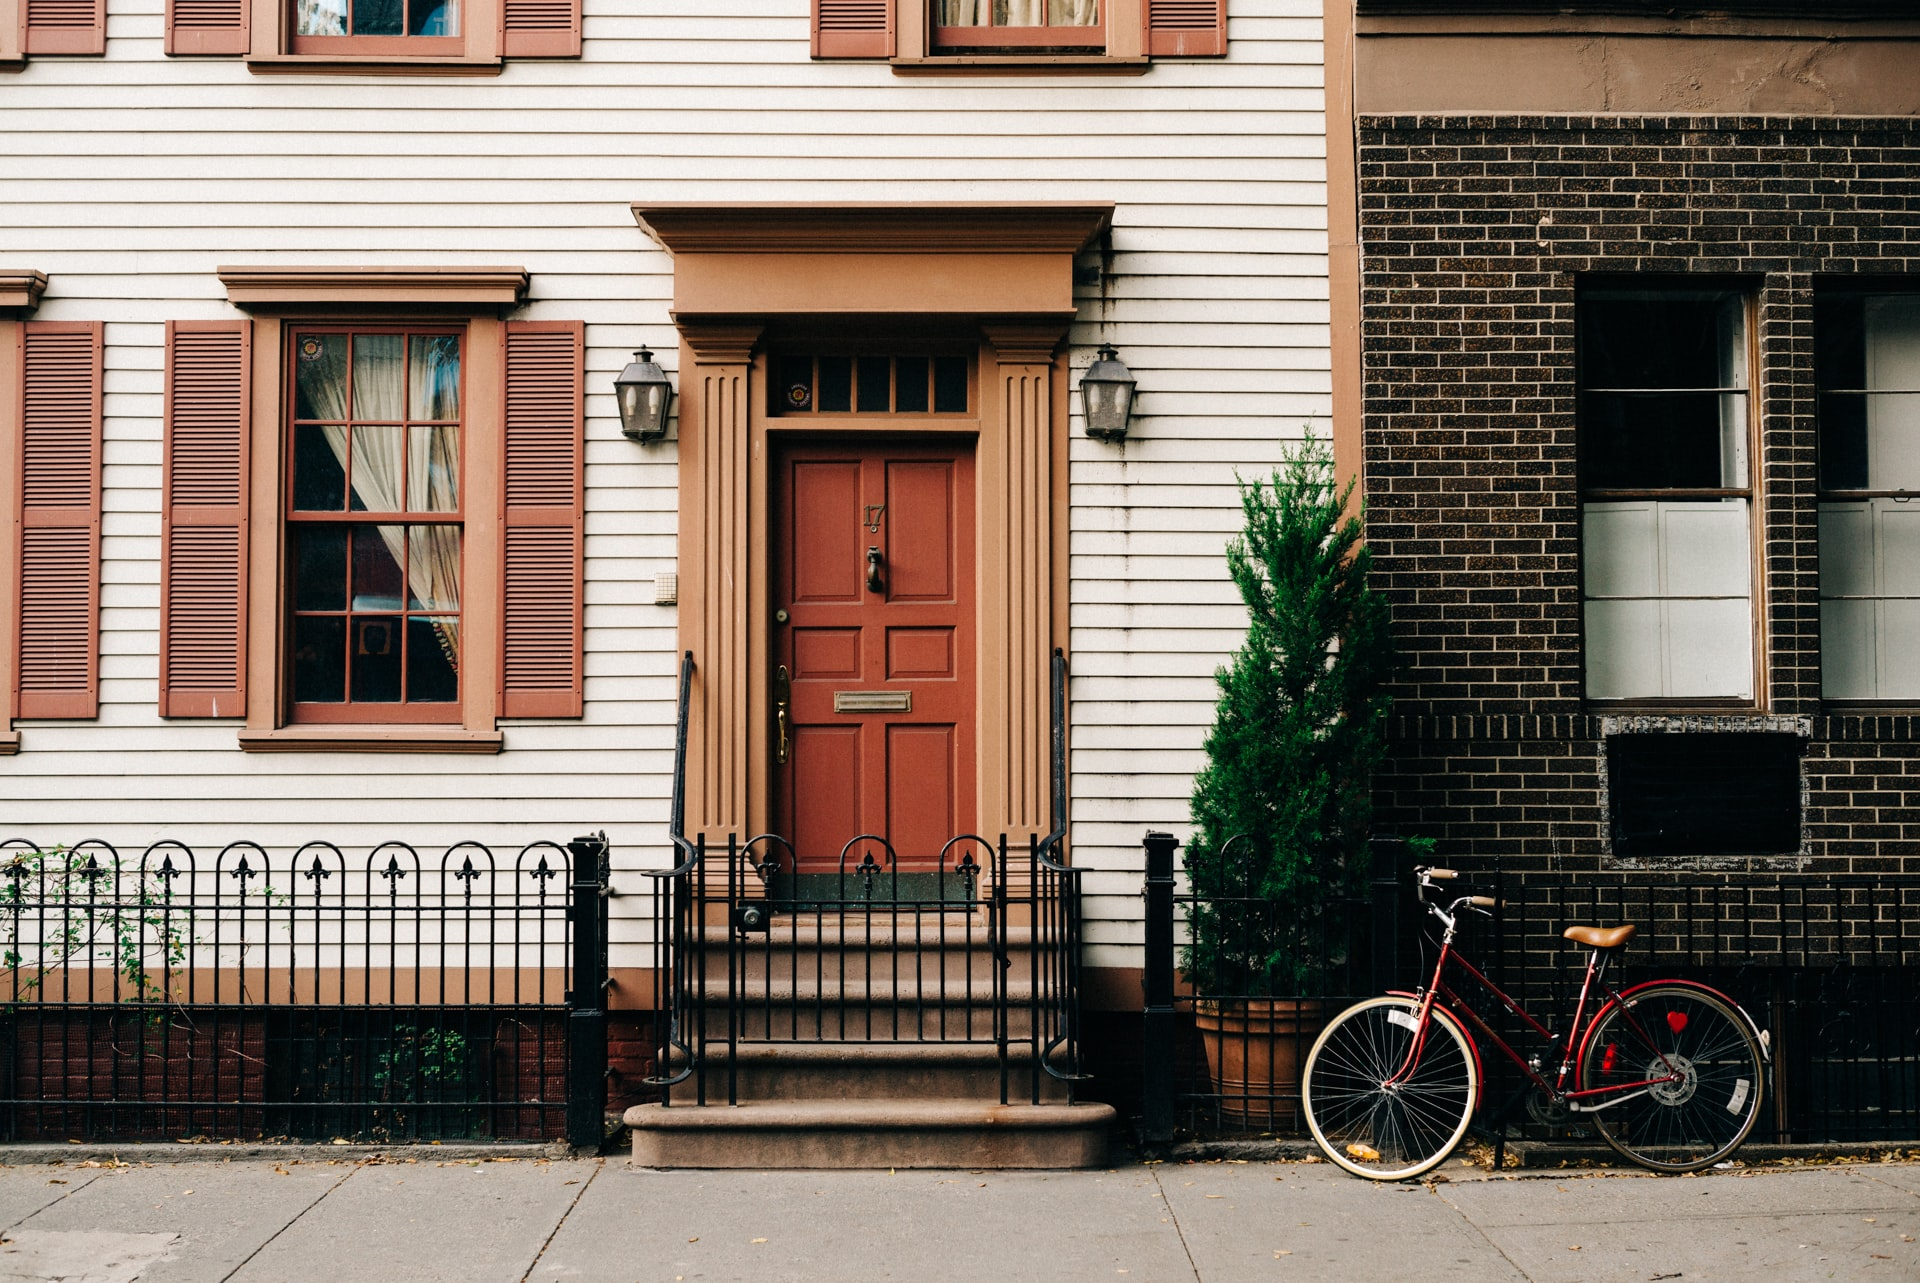 red bicycle parked beside black metal gate in front house